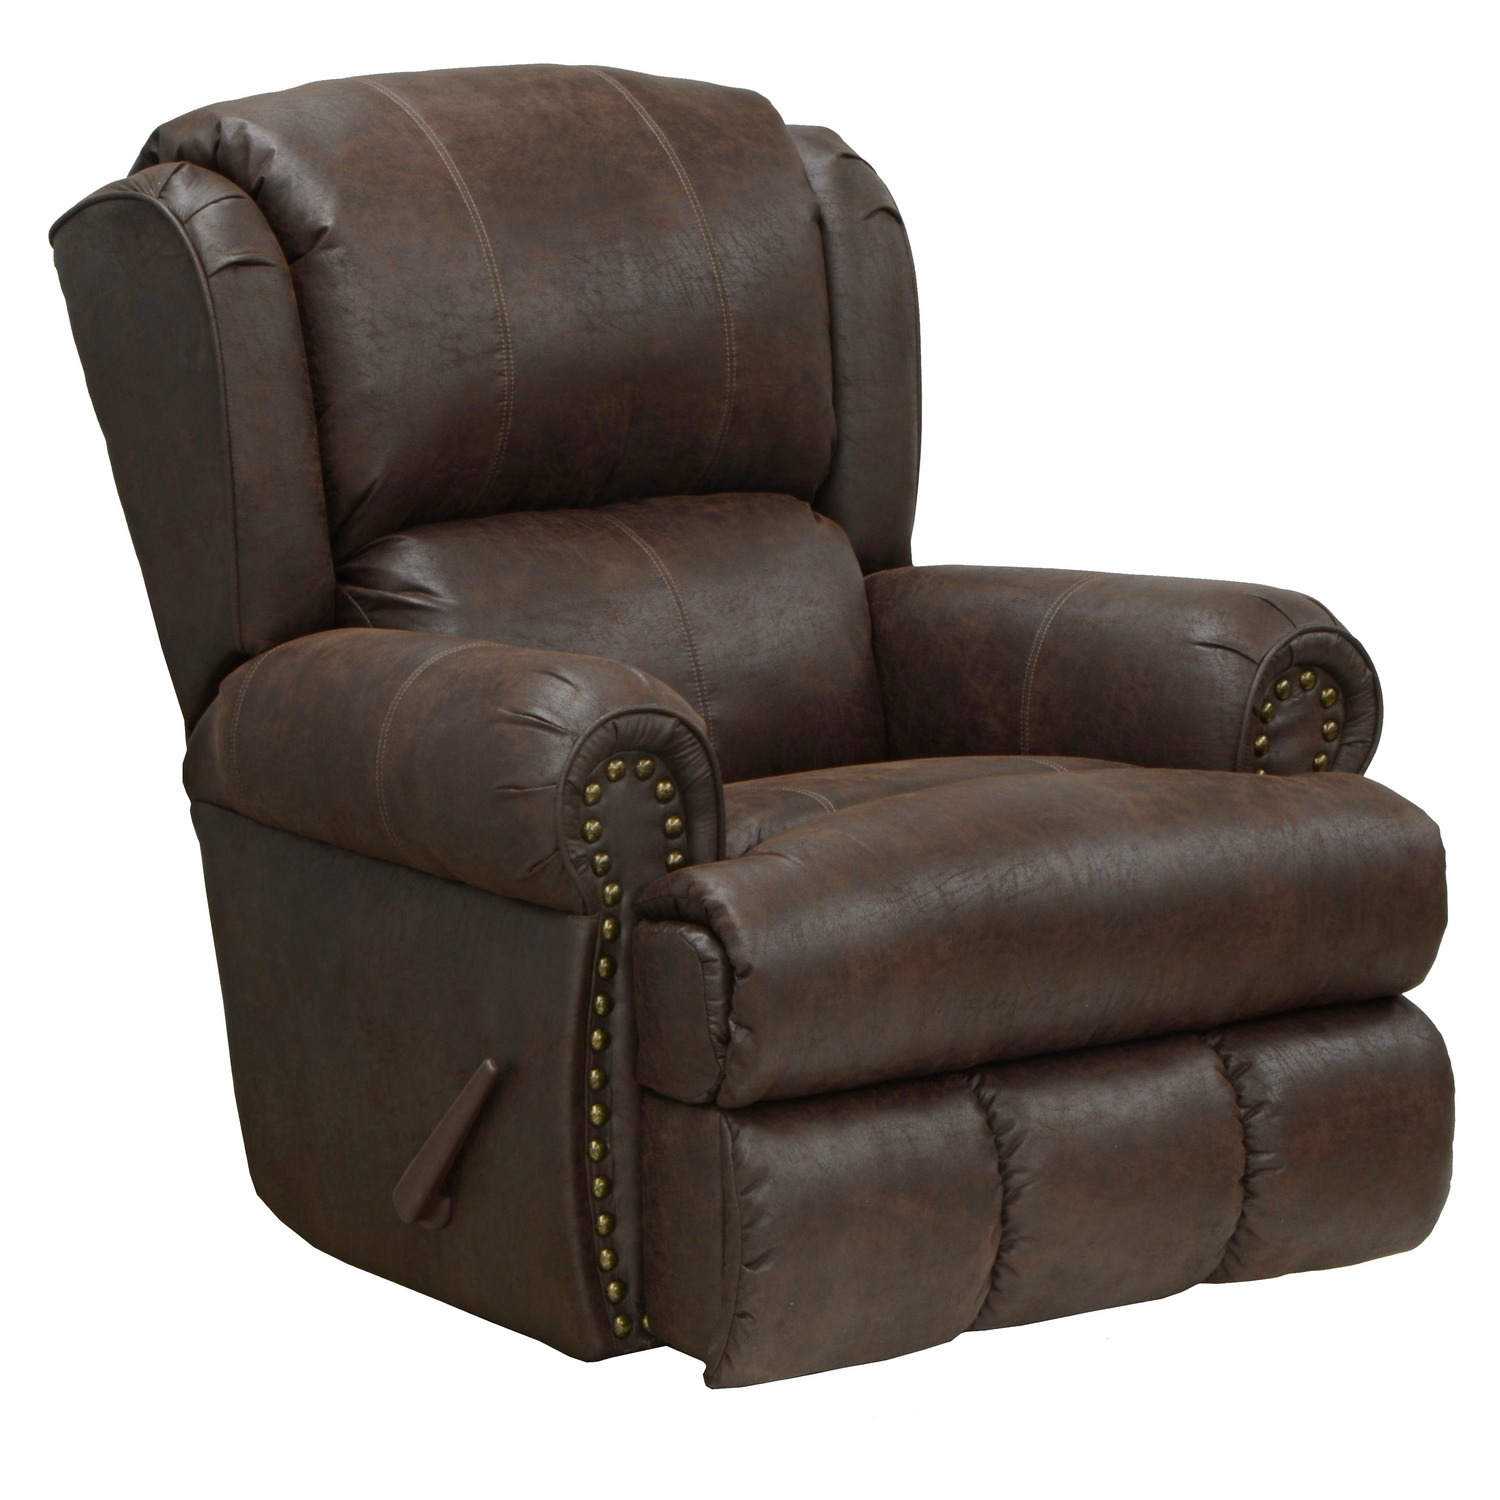 Catnapper Dempsey Leather Recliner by OJ Commerce $659.00